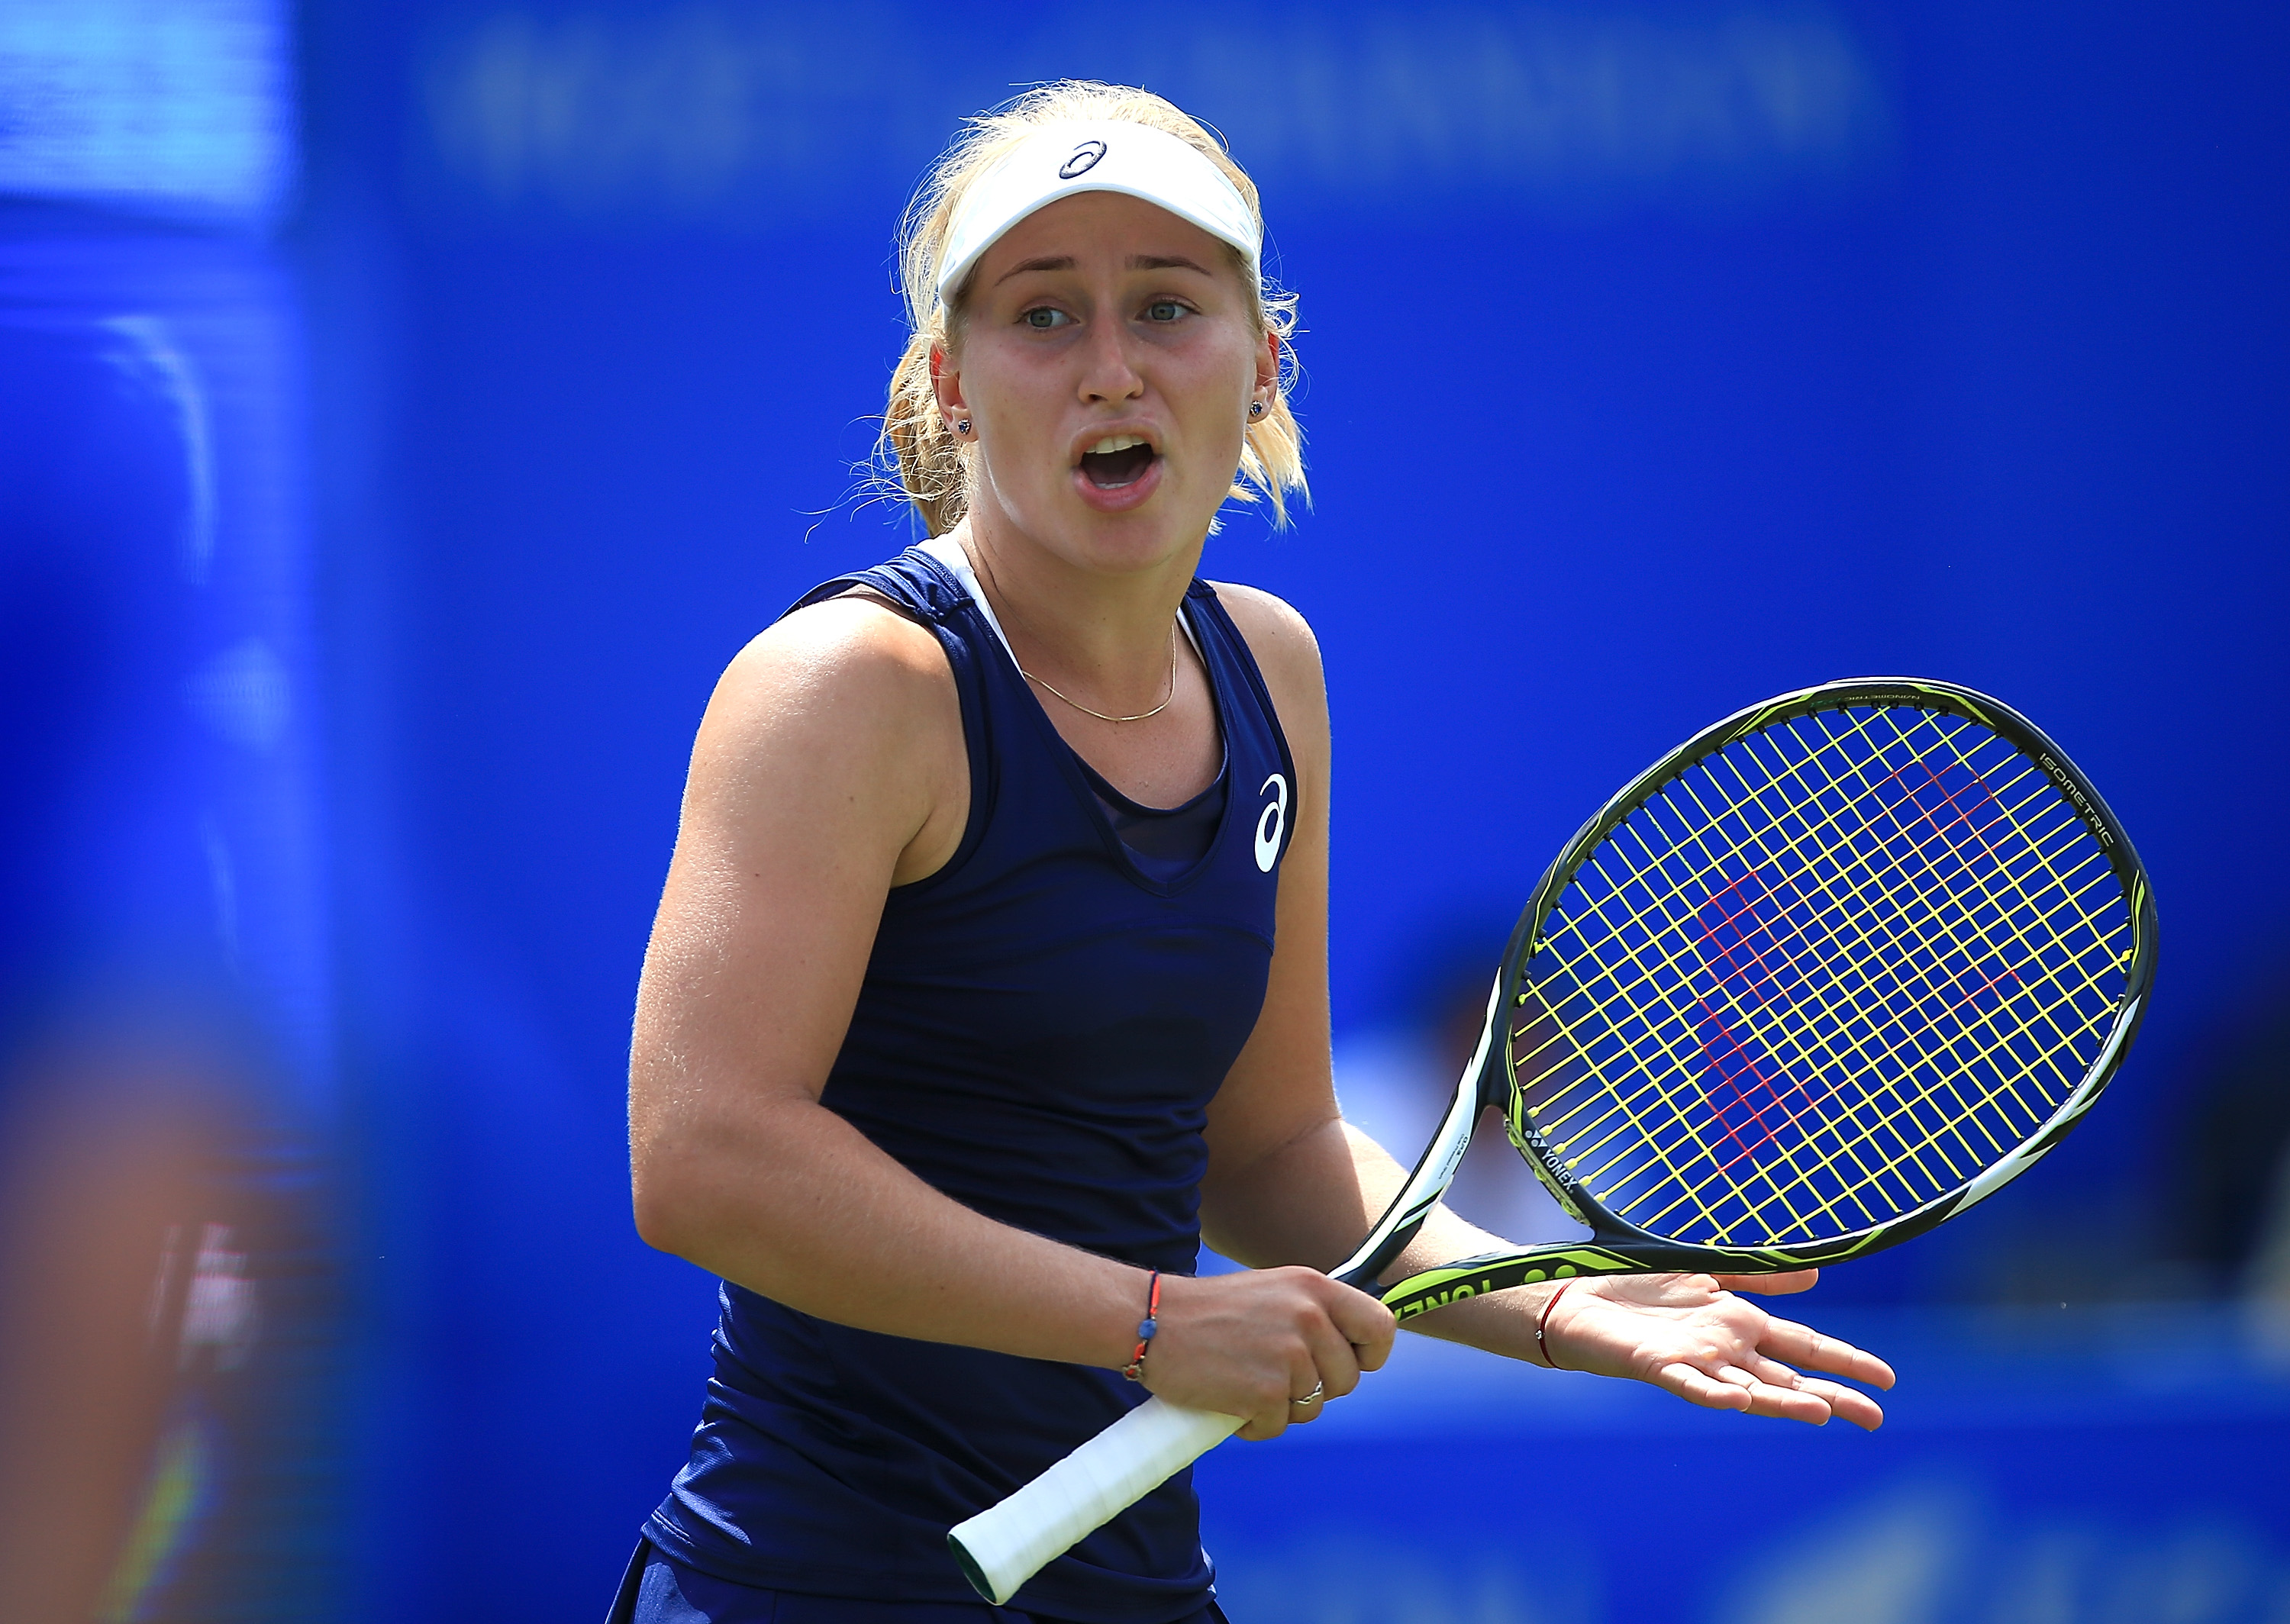 Wimbledon next for Kvitova